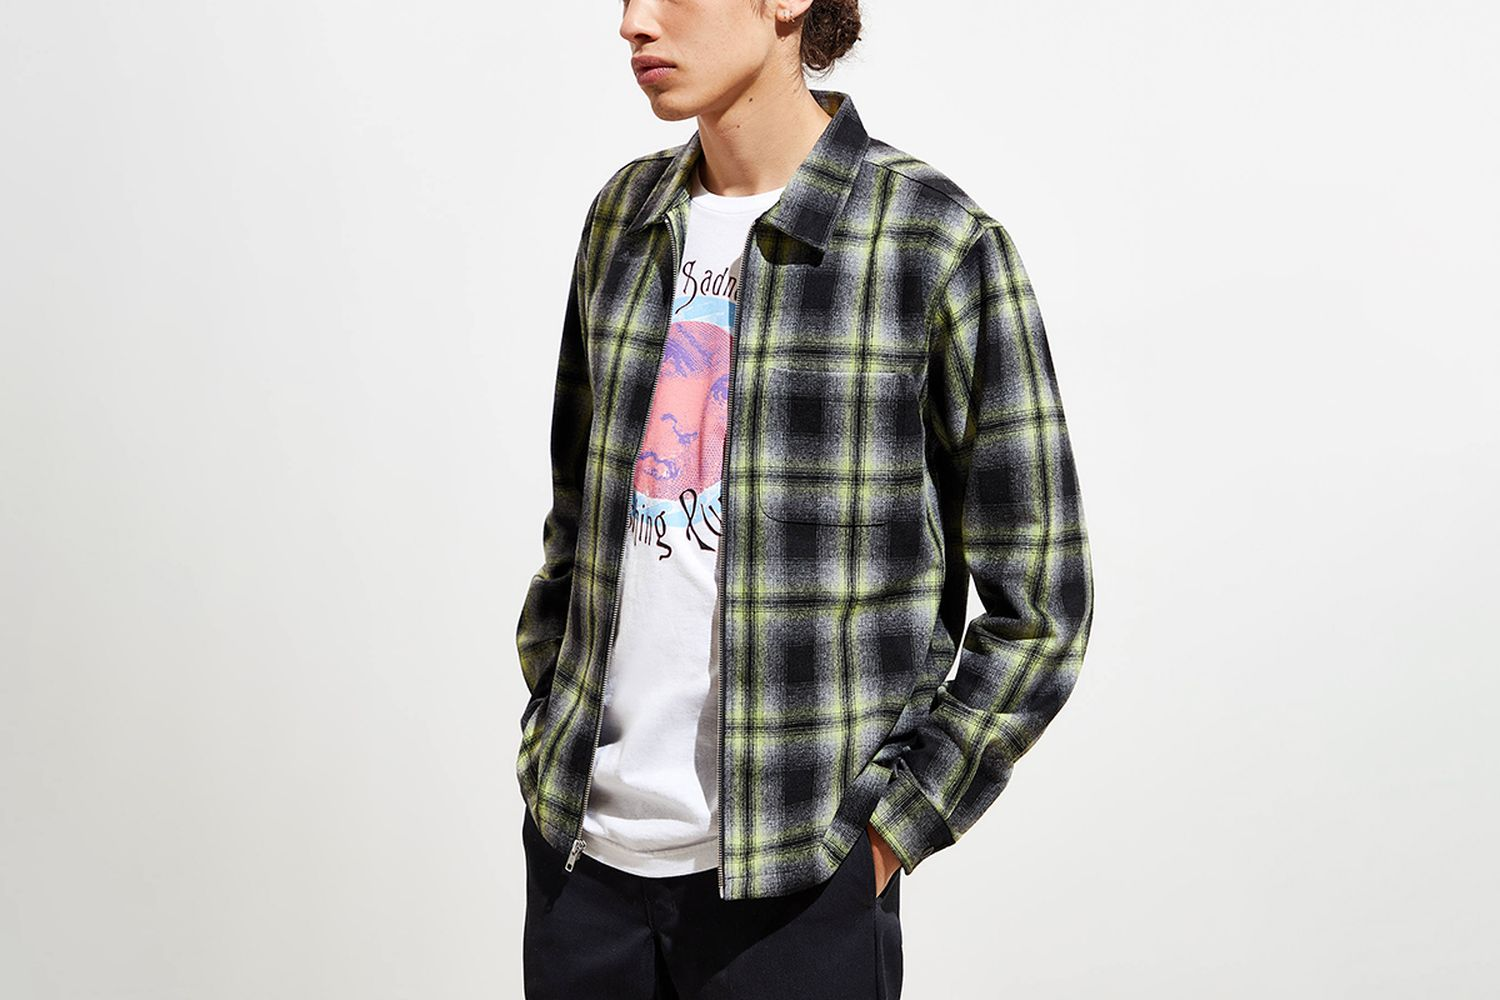 Gunn Plaid Zip-Up Shirt